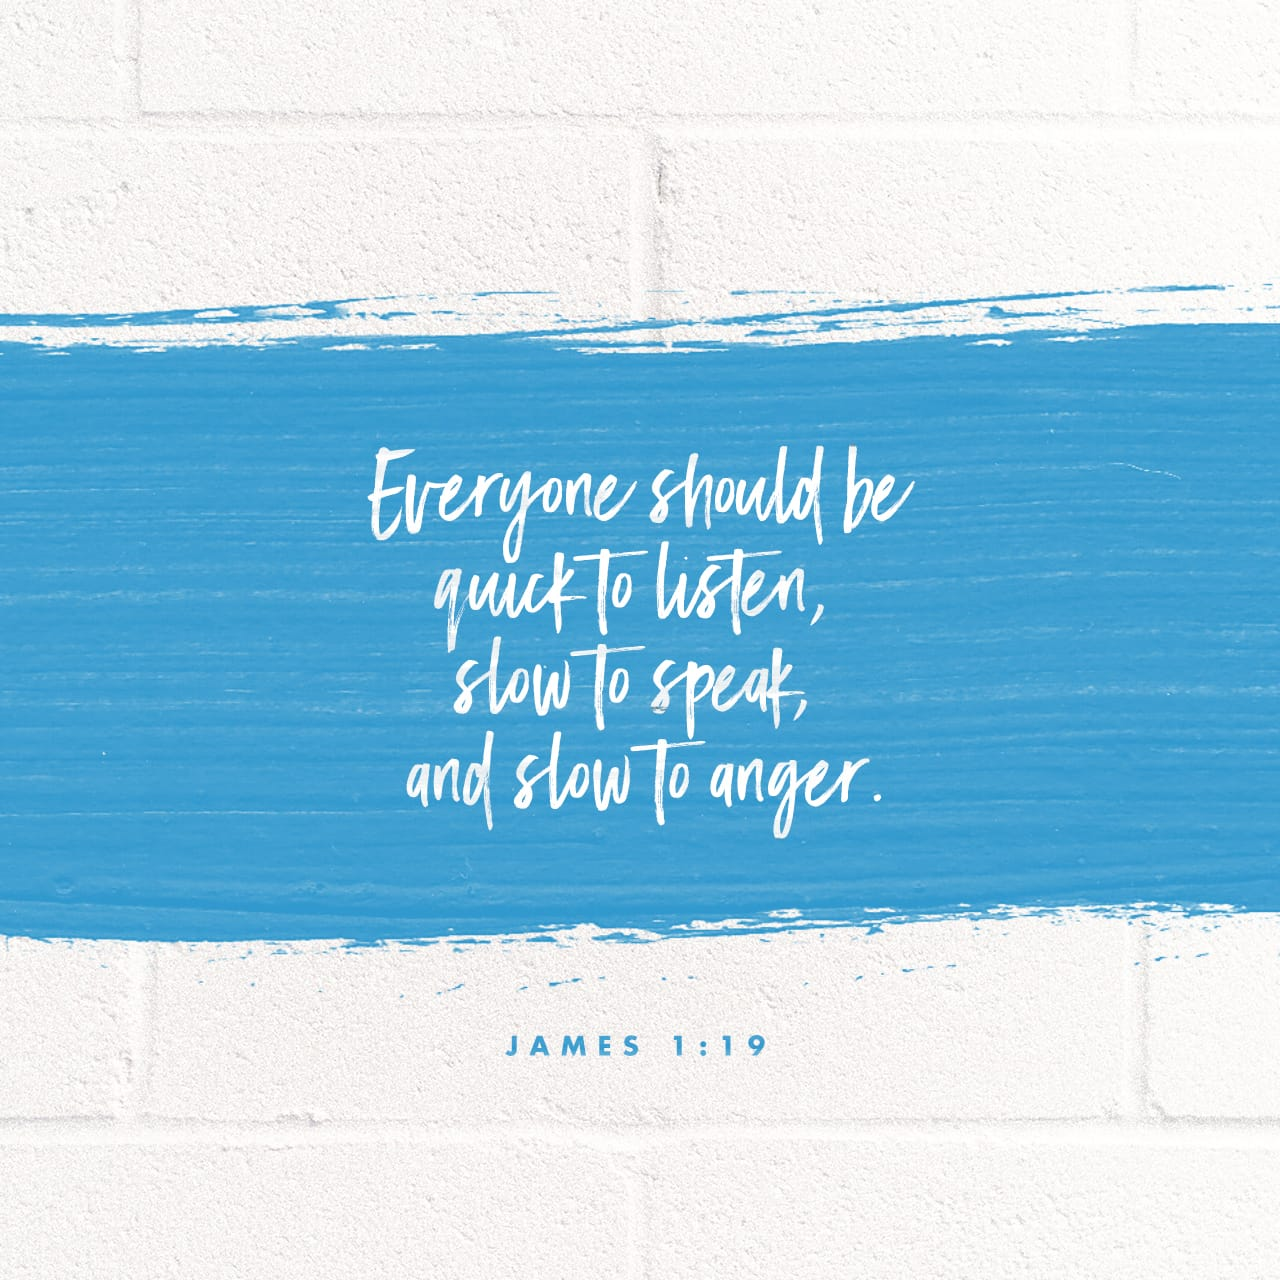 James 1:19-21 Understand this, my dear brothers and sisters! Let every person be quick to listen, slow to speak, slow to anger. For human anger does not accomplish God's righteousness. So put away all filth and evi | New English Translation (NET)